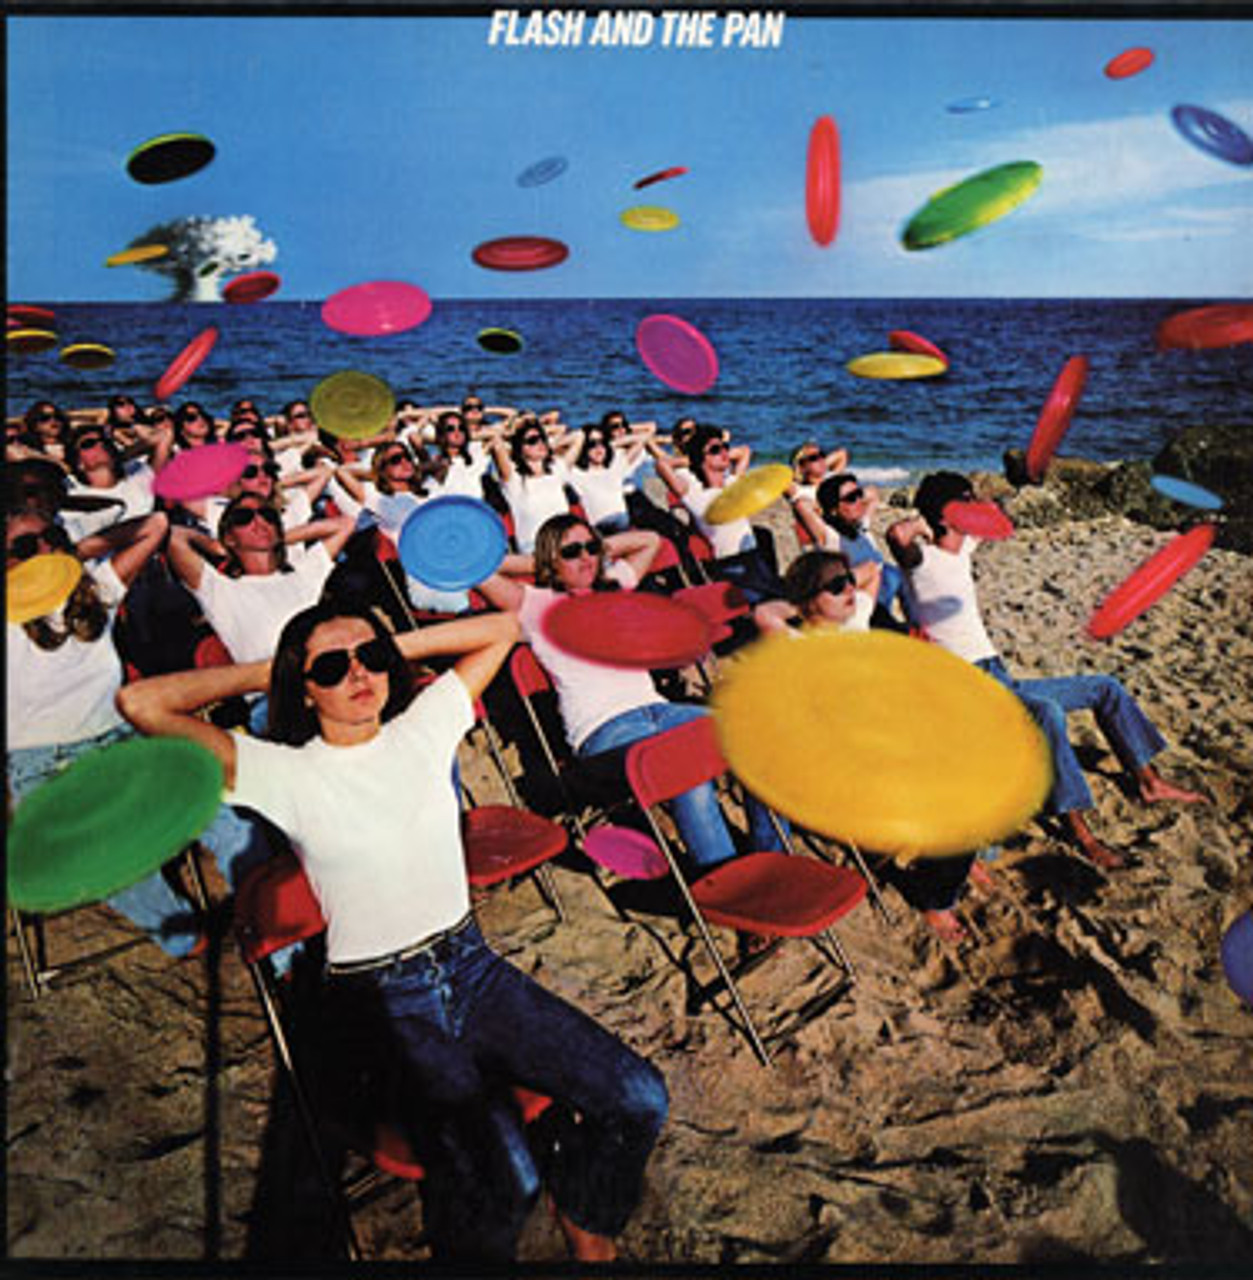 Flash And The Pan by Flash And The Pan Available on CD